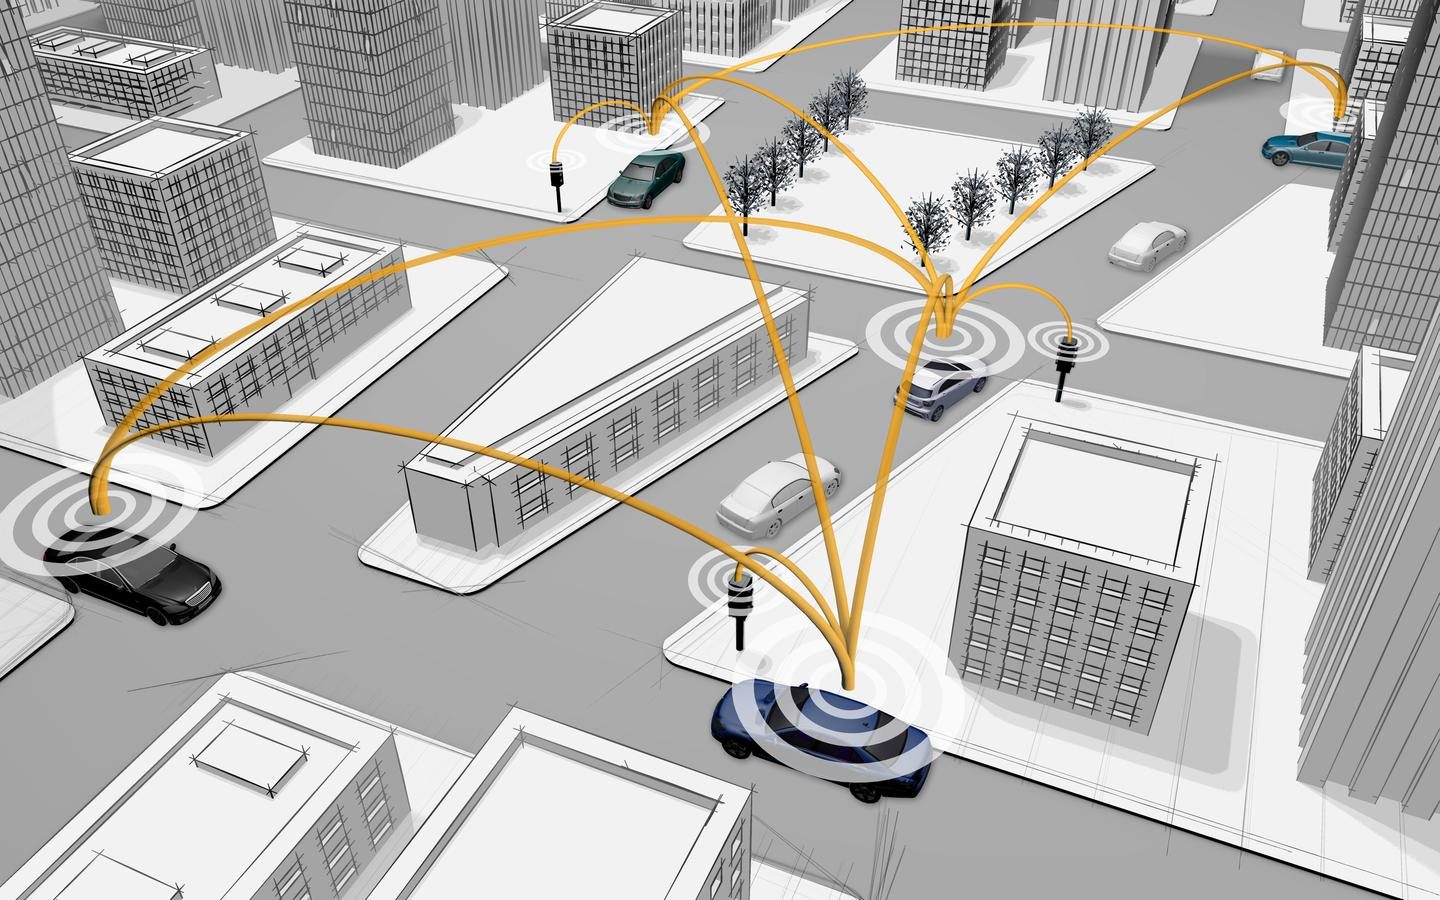 Daimler's C2X system sees vehicles and traffic infrastructure network linked so they can communicate with each other (Image: Daimler)